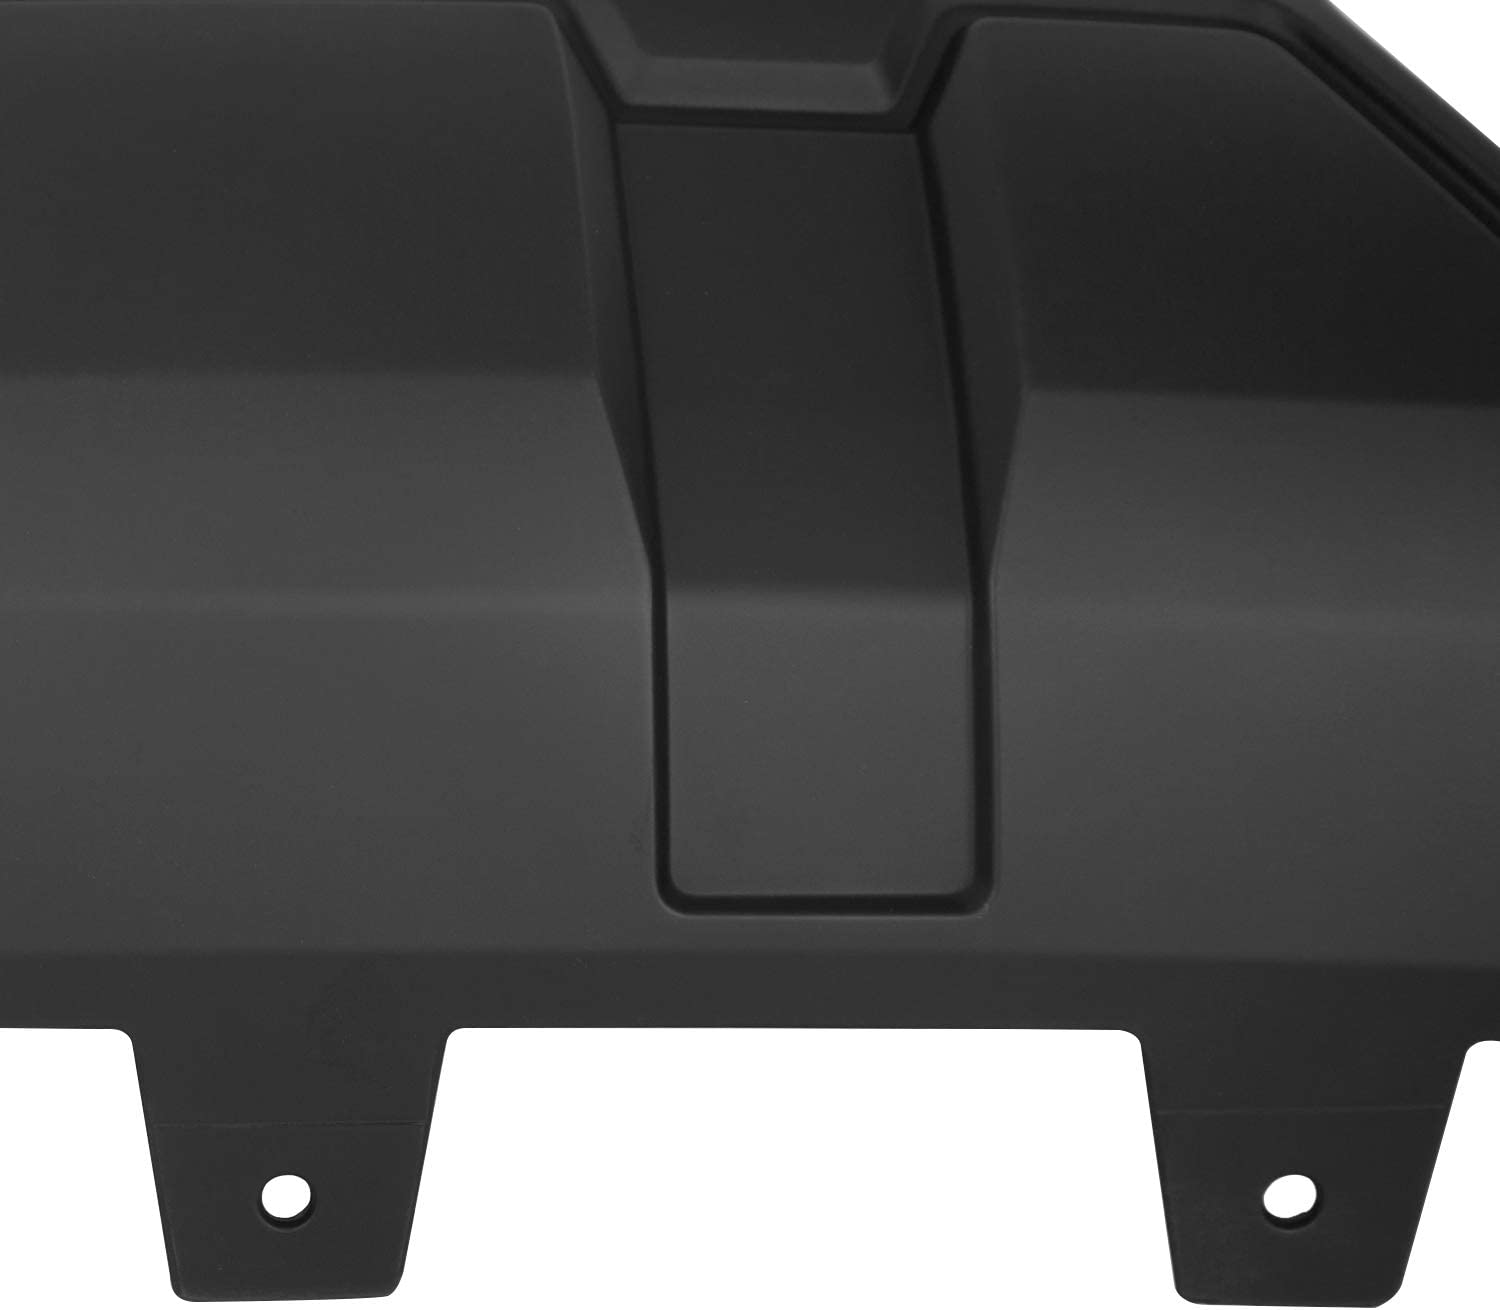 Replace for 23243494; GM1015123 Black ECOTRIC Compatible Front Bumper Skid Plate Replace for 2016 2017 2018 GMC Sierra 1500